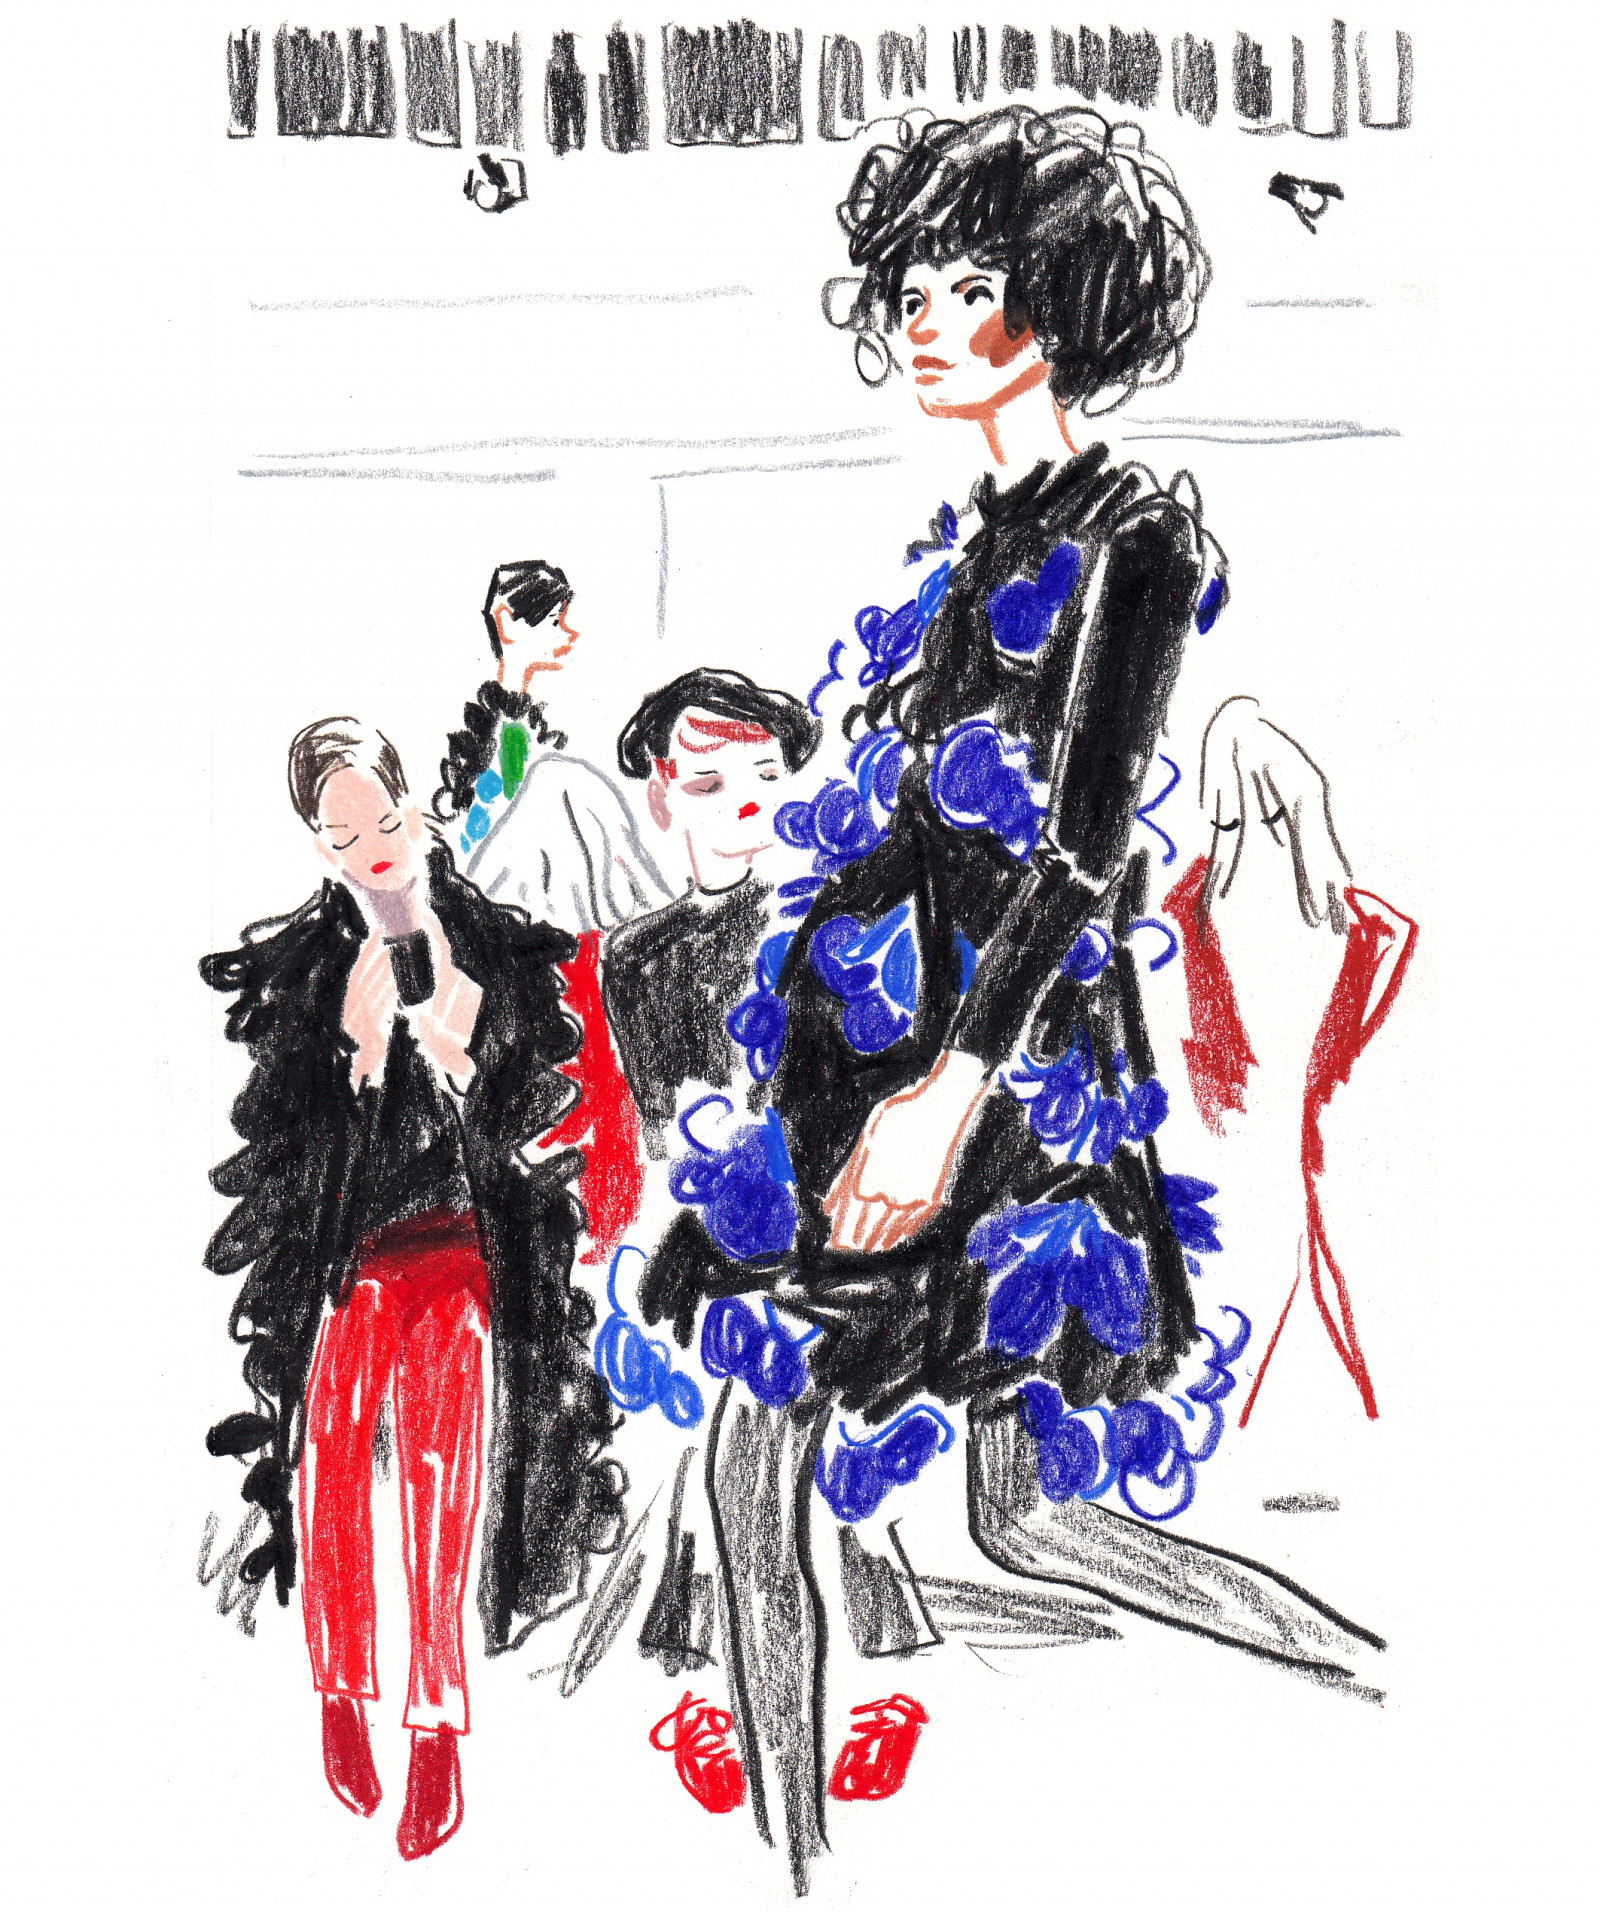 Paris Fashion Week 1 by Damien Florébert CUYPERS